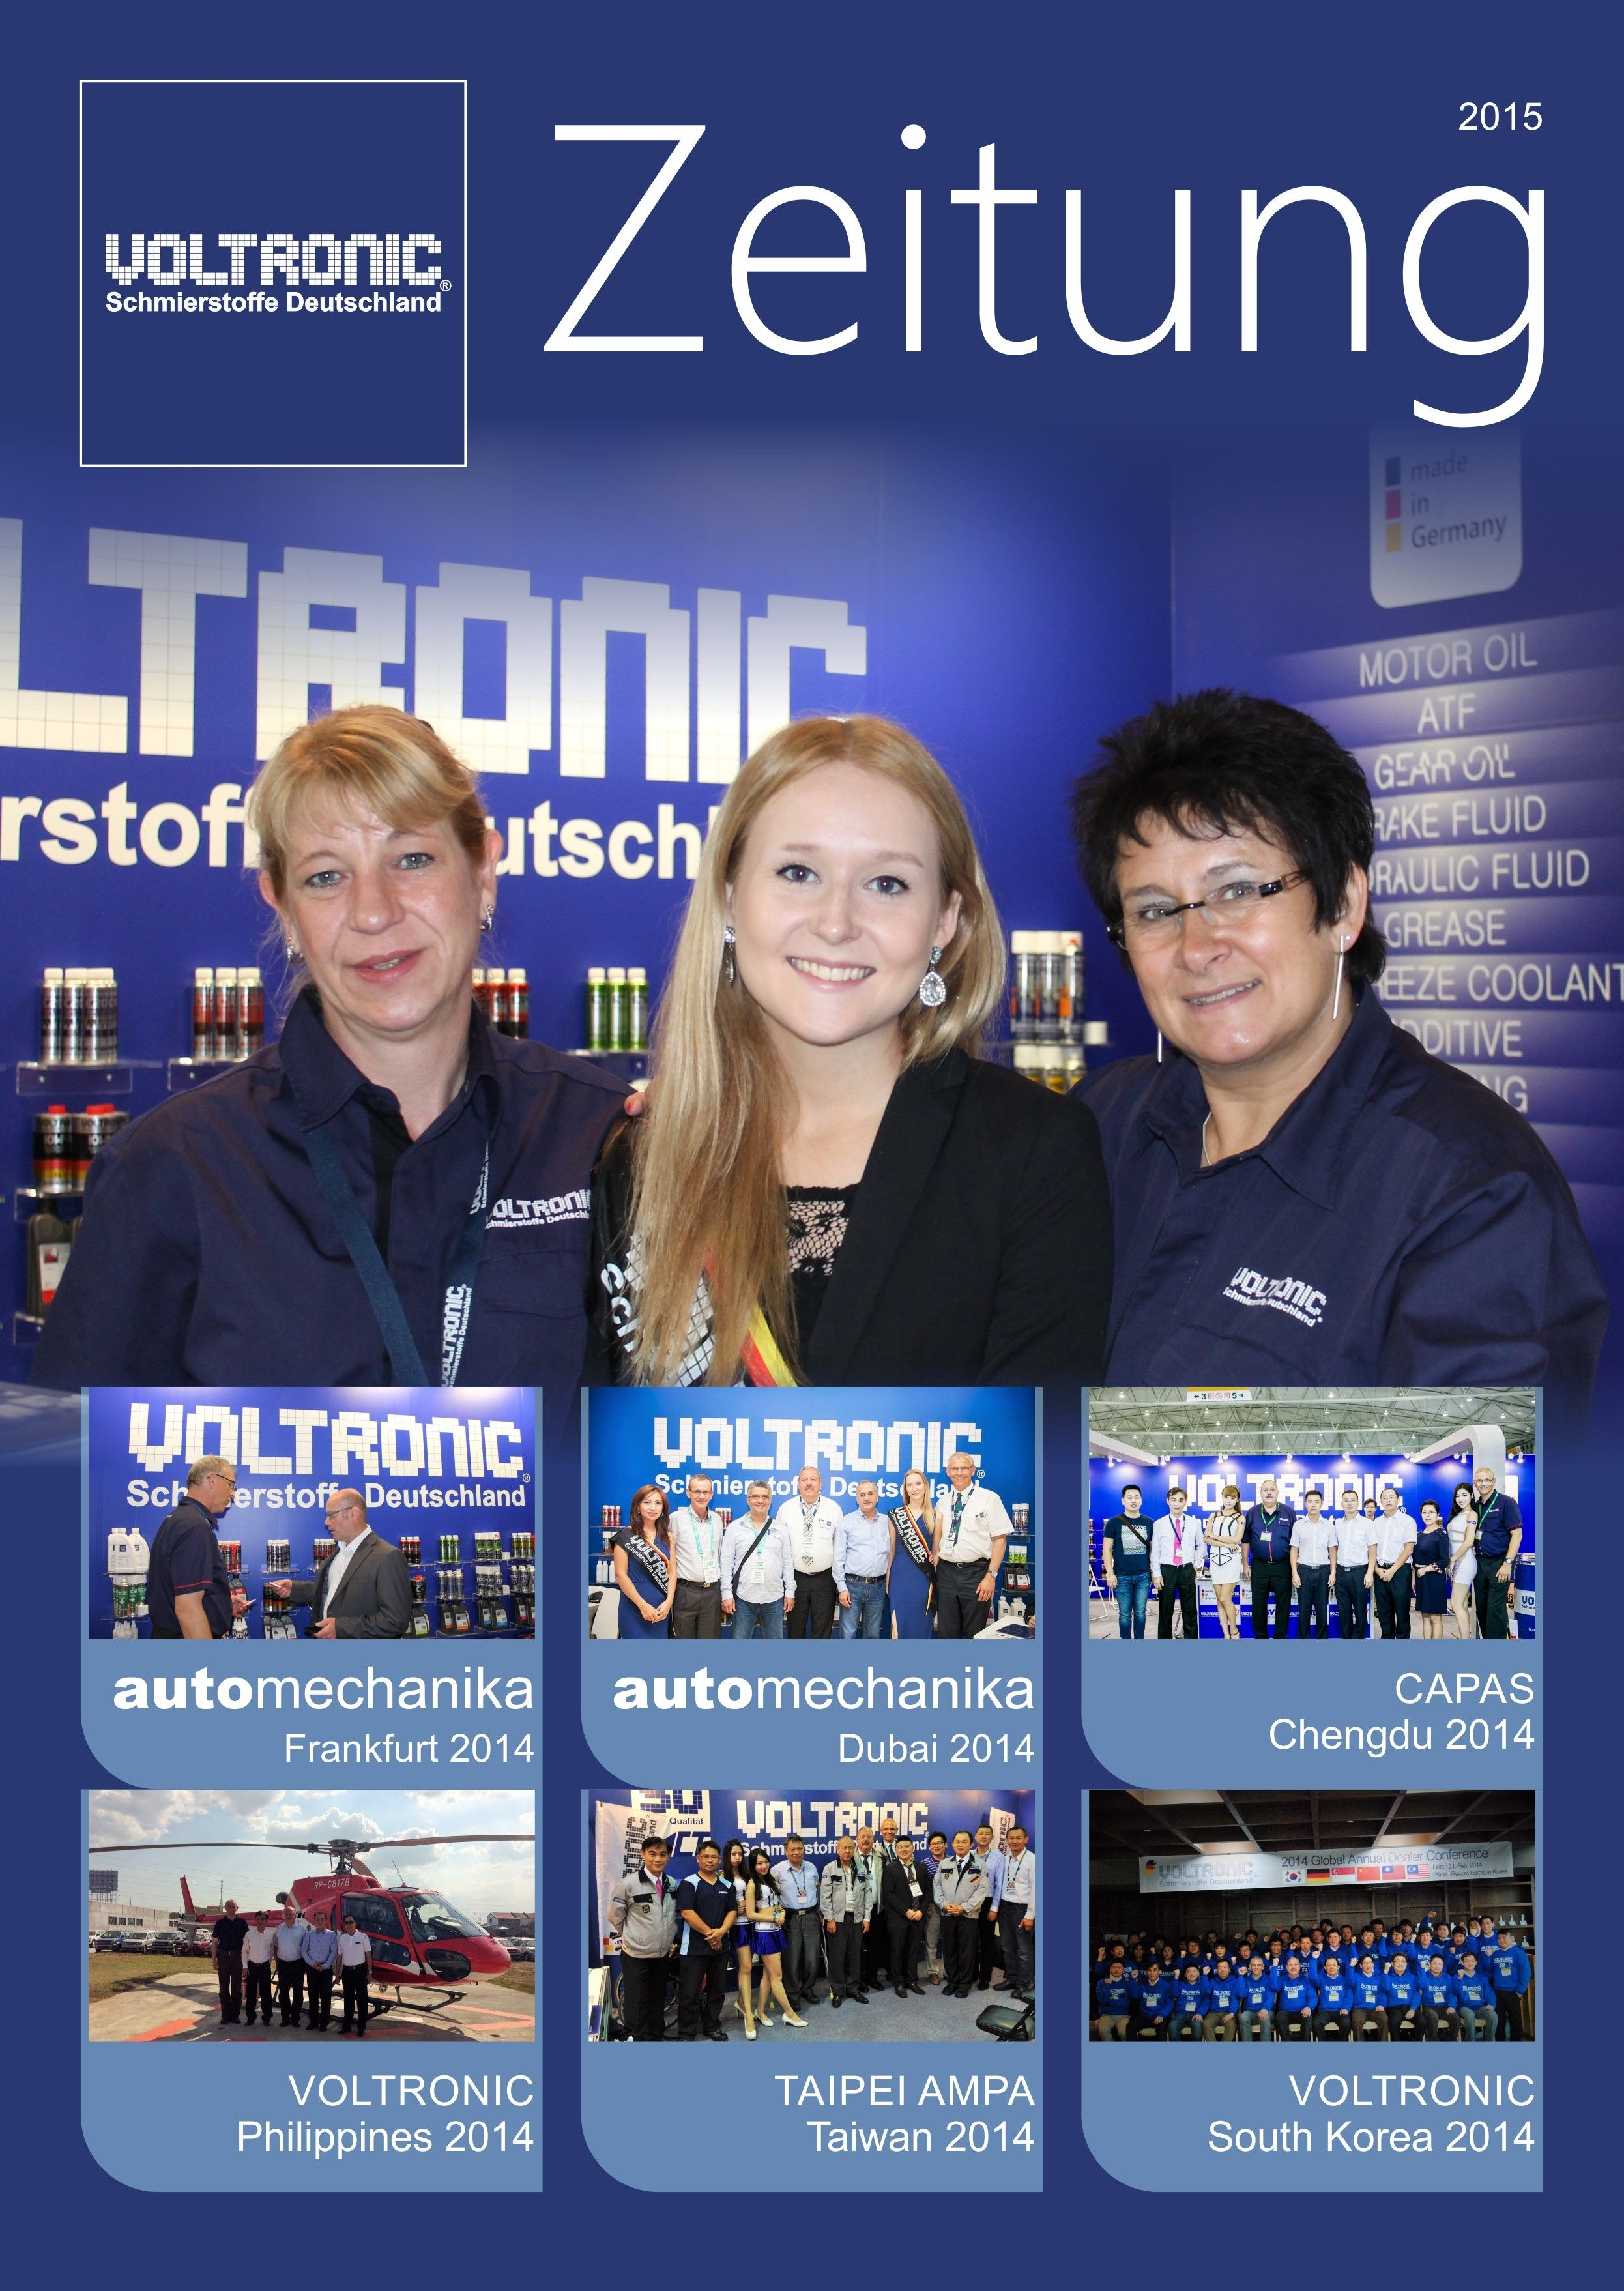 VOLTRONIC Germany Zeitung Magazine 2015 release first time during Automechanika Shanghai 2014.